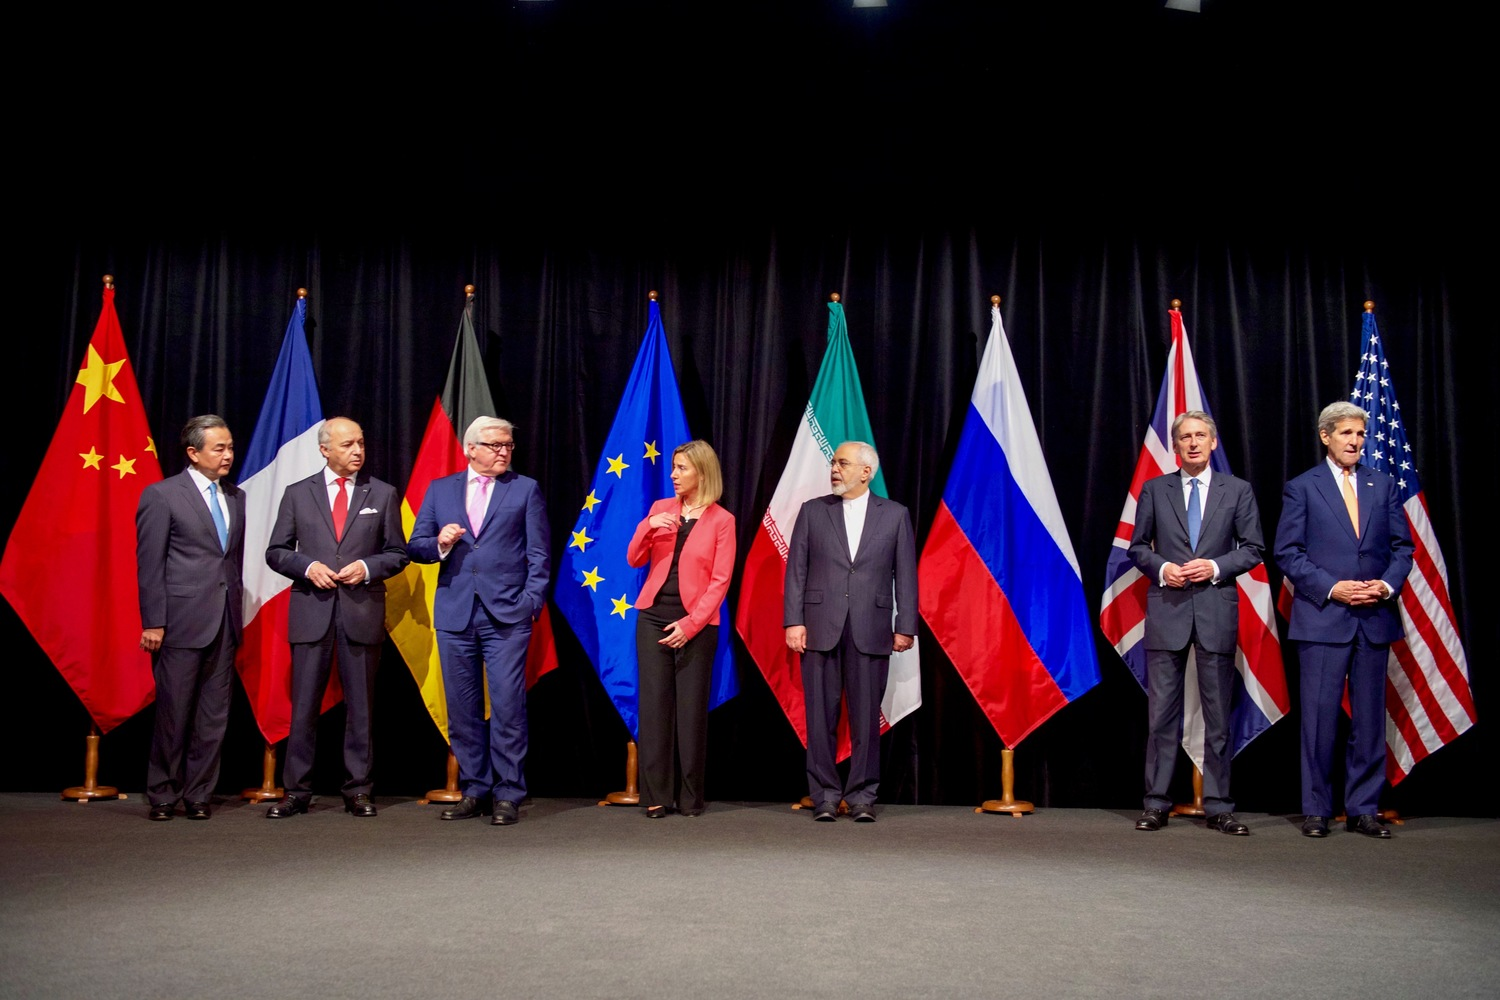 U.S. Secretary of State John Kerry posed with his fellow E.U., P5+1, and Iranian counterparts at the Austria Center in Vienna, Austria, on July 14, 2015, for a group photo shortly after the formal announcement of the agreement concluding the Iranian nuclear negotiations. Credit: U.S. Department of State.